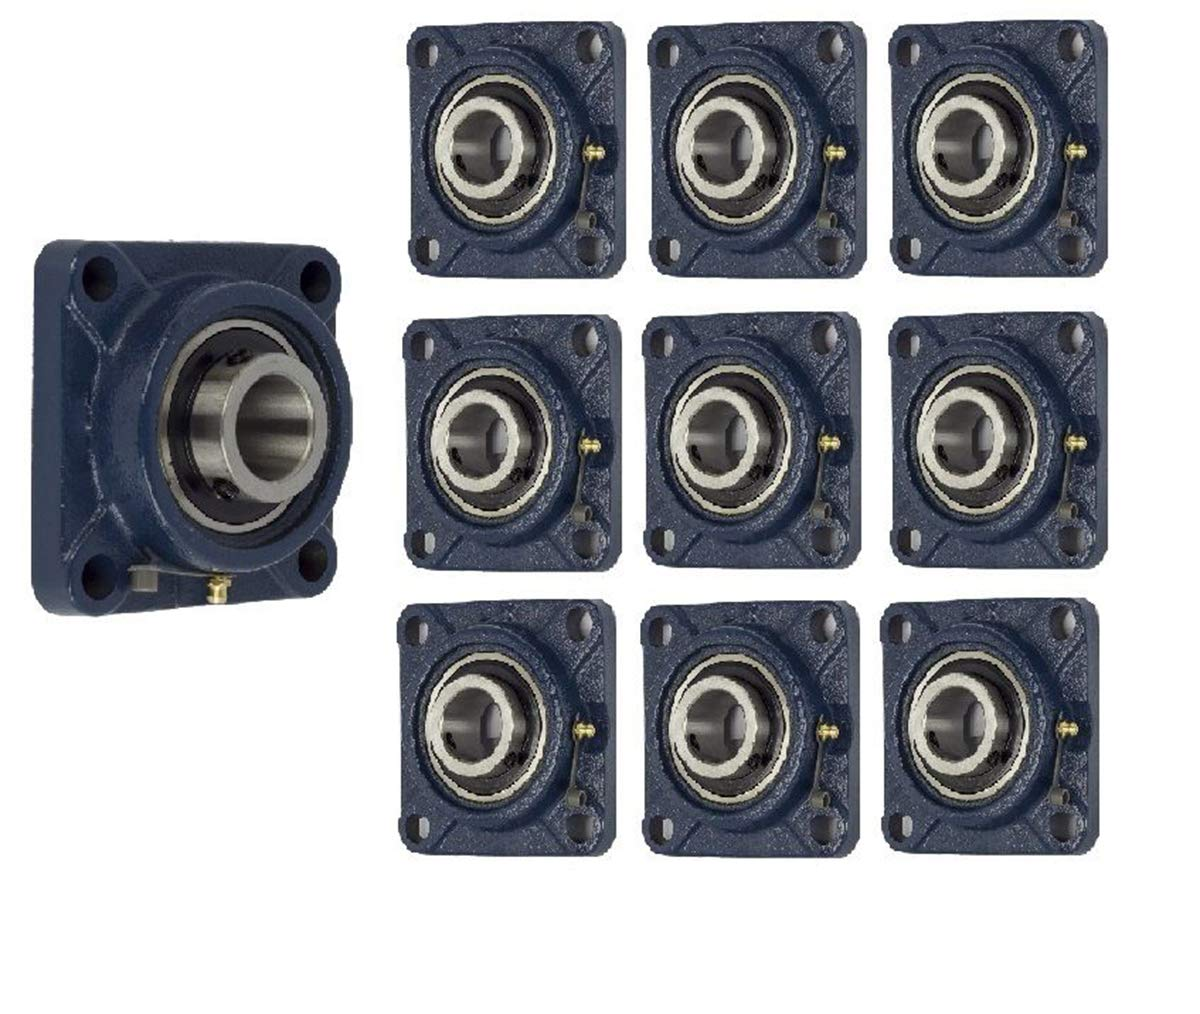 Jeremywell UCF204-12 Low price Pillow Block Flange Max 59% OFF Bearing 4 3 4